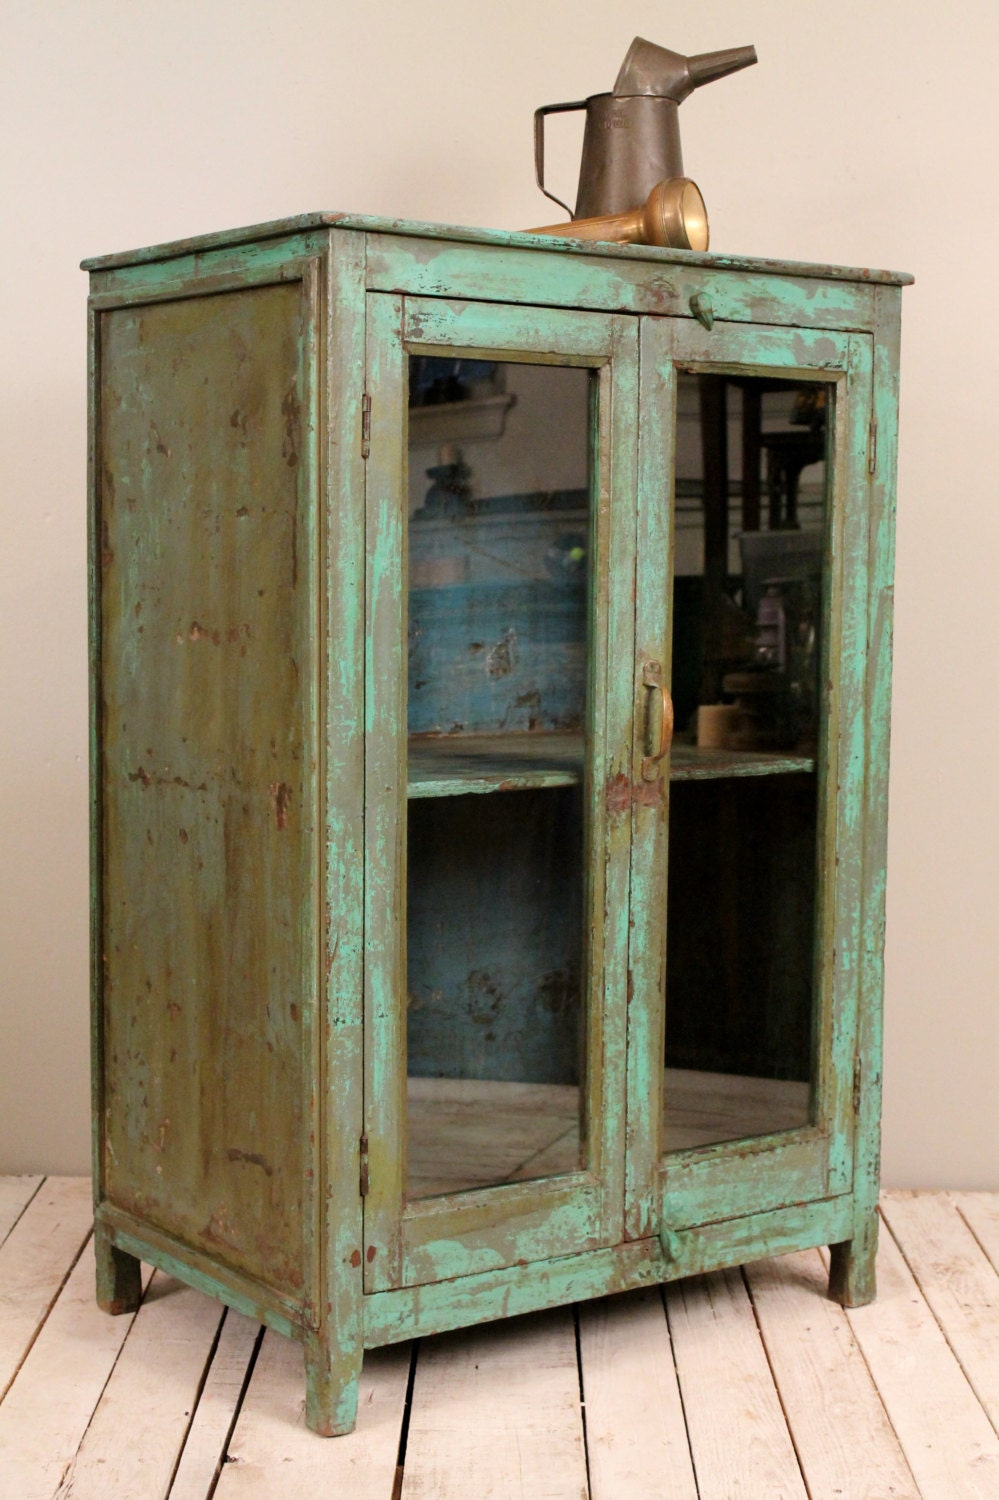 Antique Rustic Chic Bright Green Indian Bar Storage Kitchen